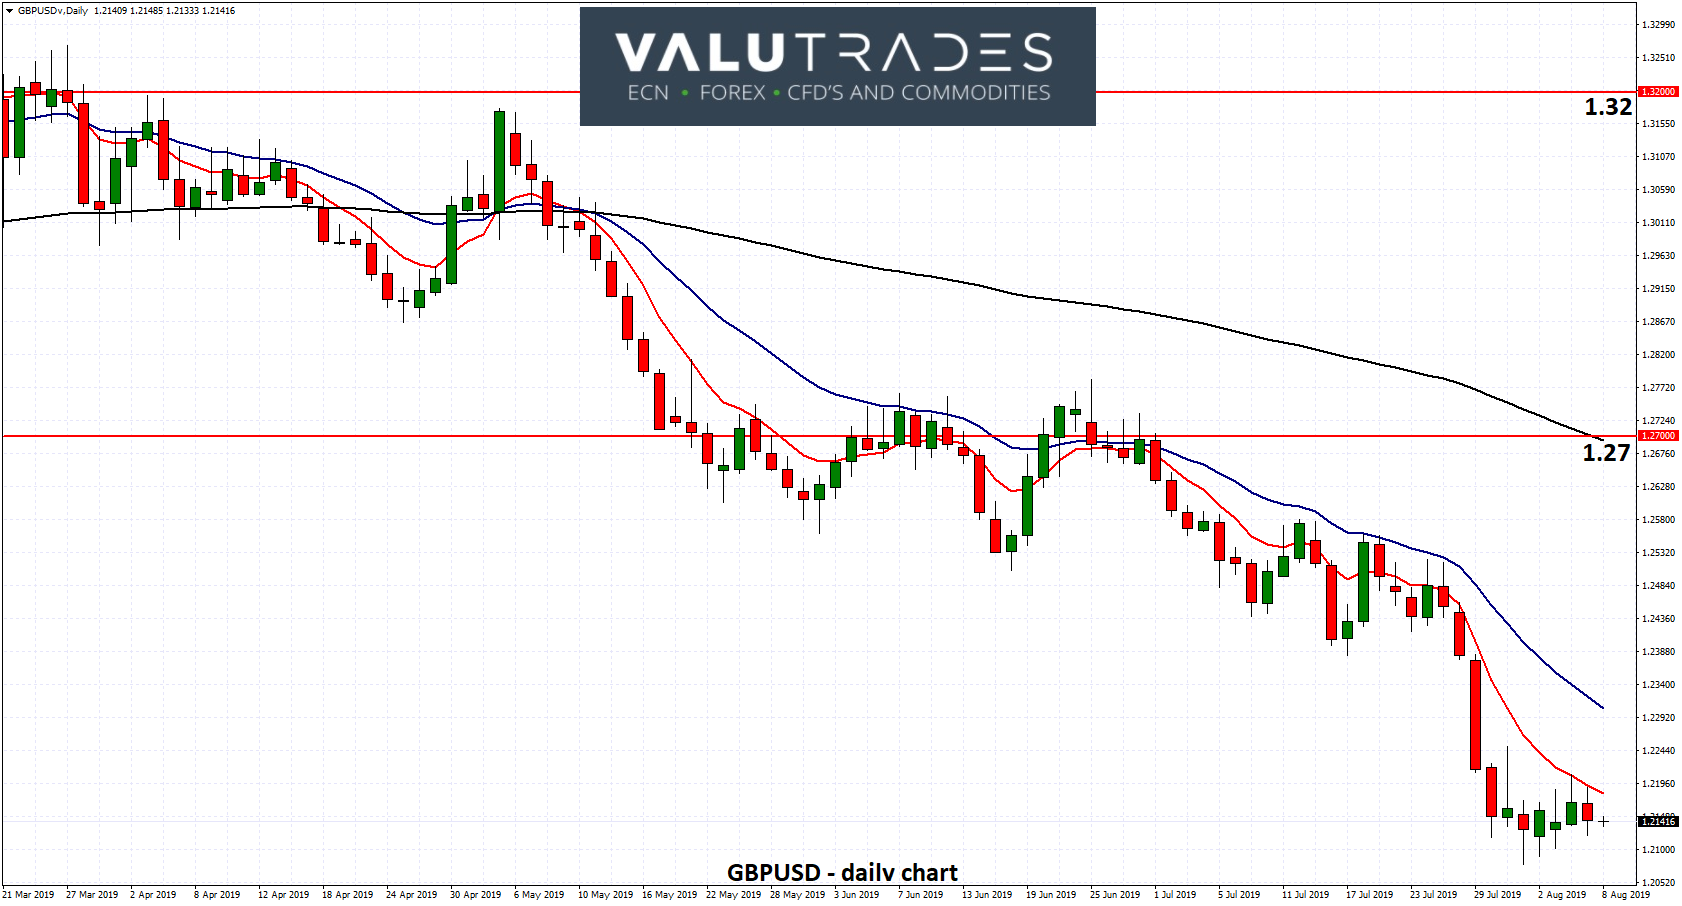 GBPUSD - Consolidates Above 1.21 as BOE Cuts Growth Forecasts